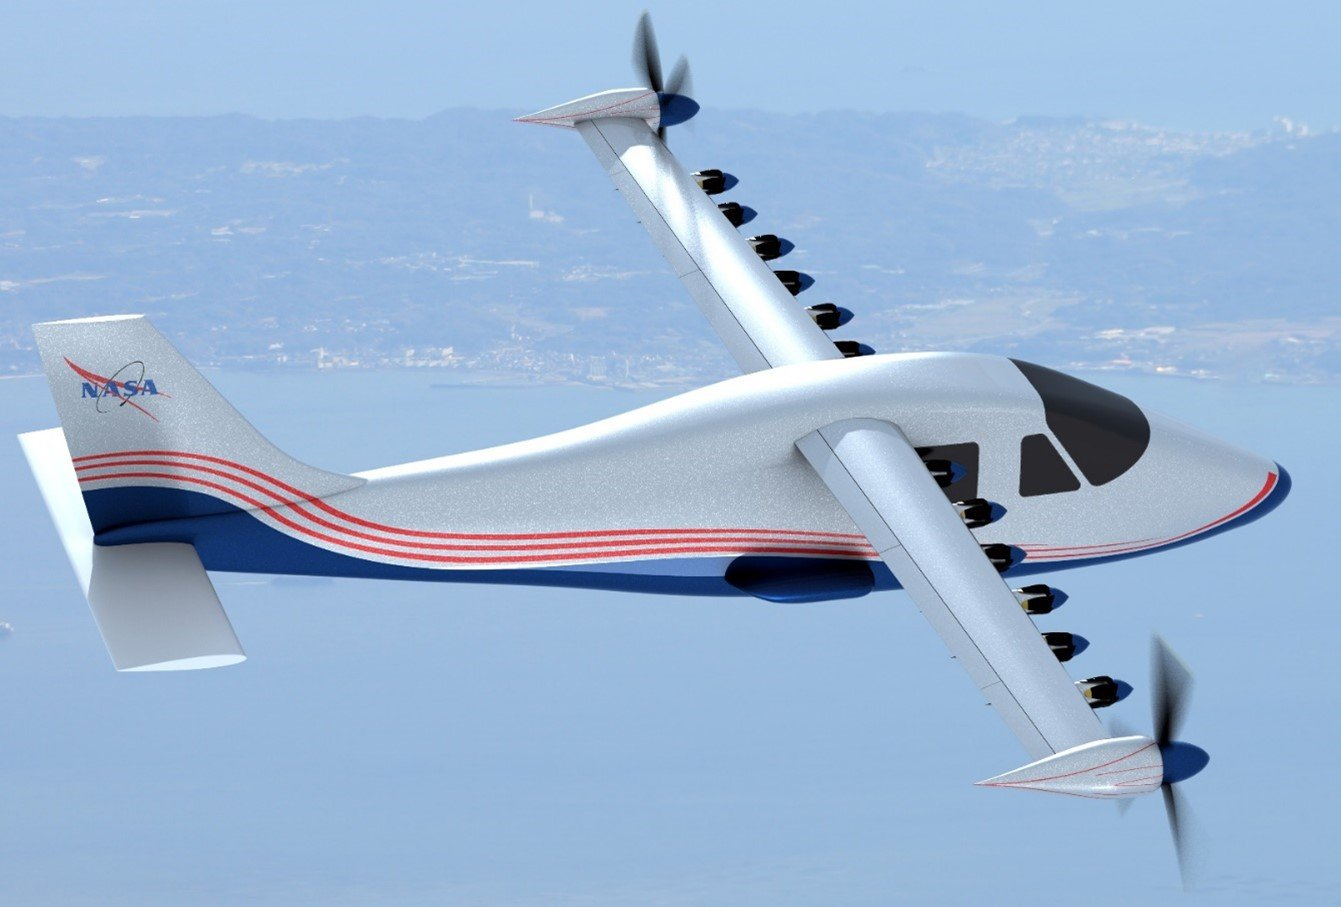 NASA's Work in Progress with its First Electric Airplane